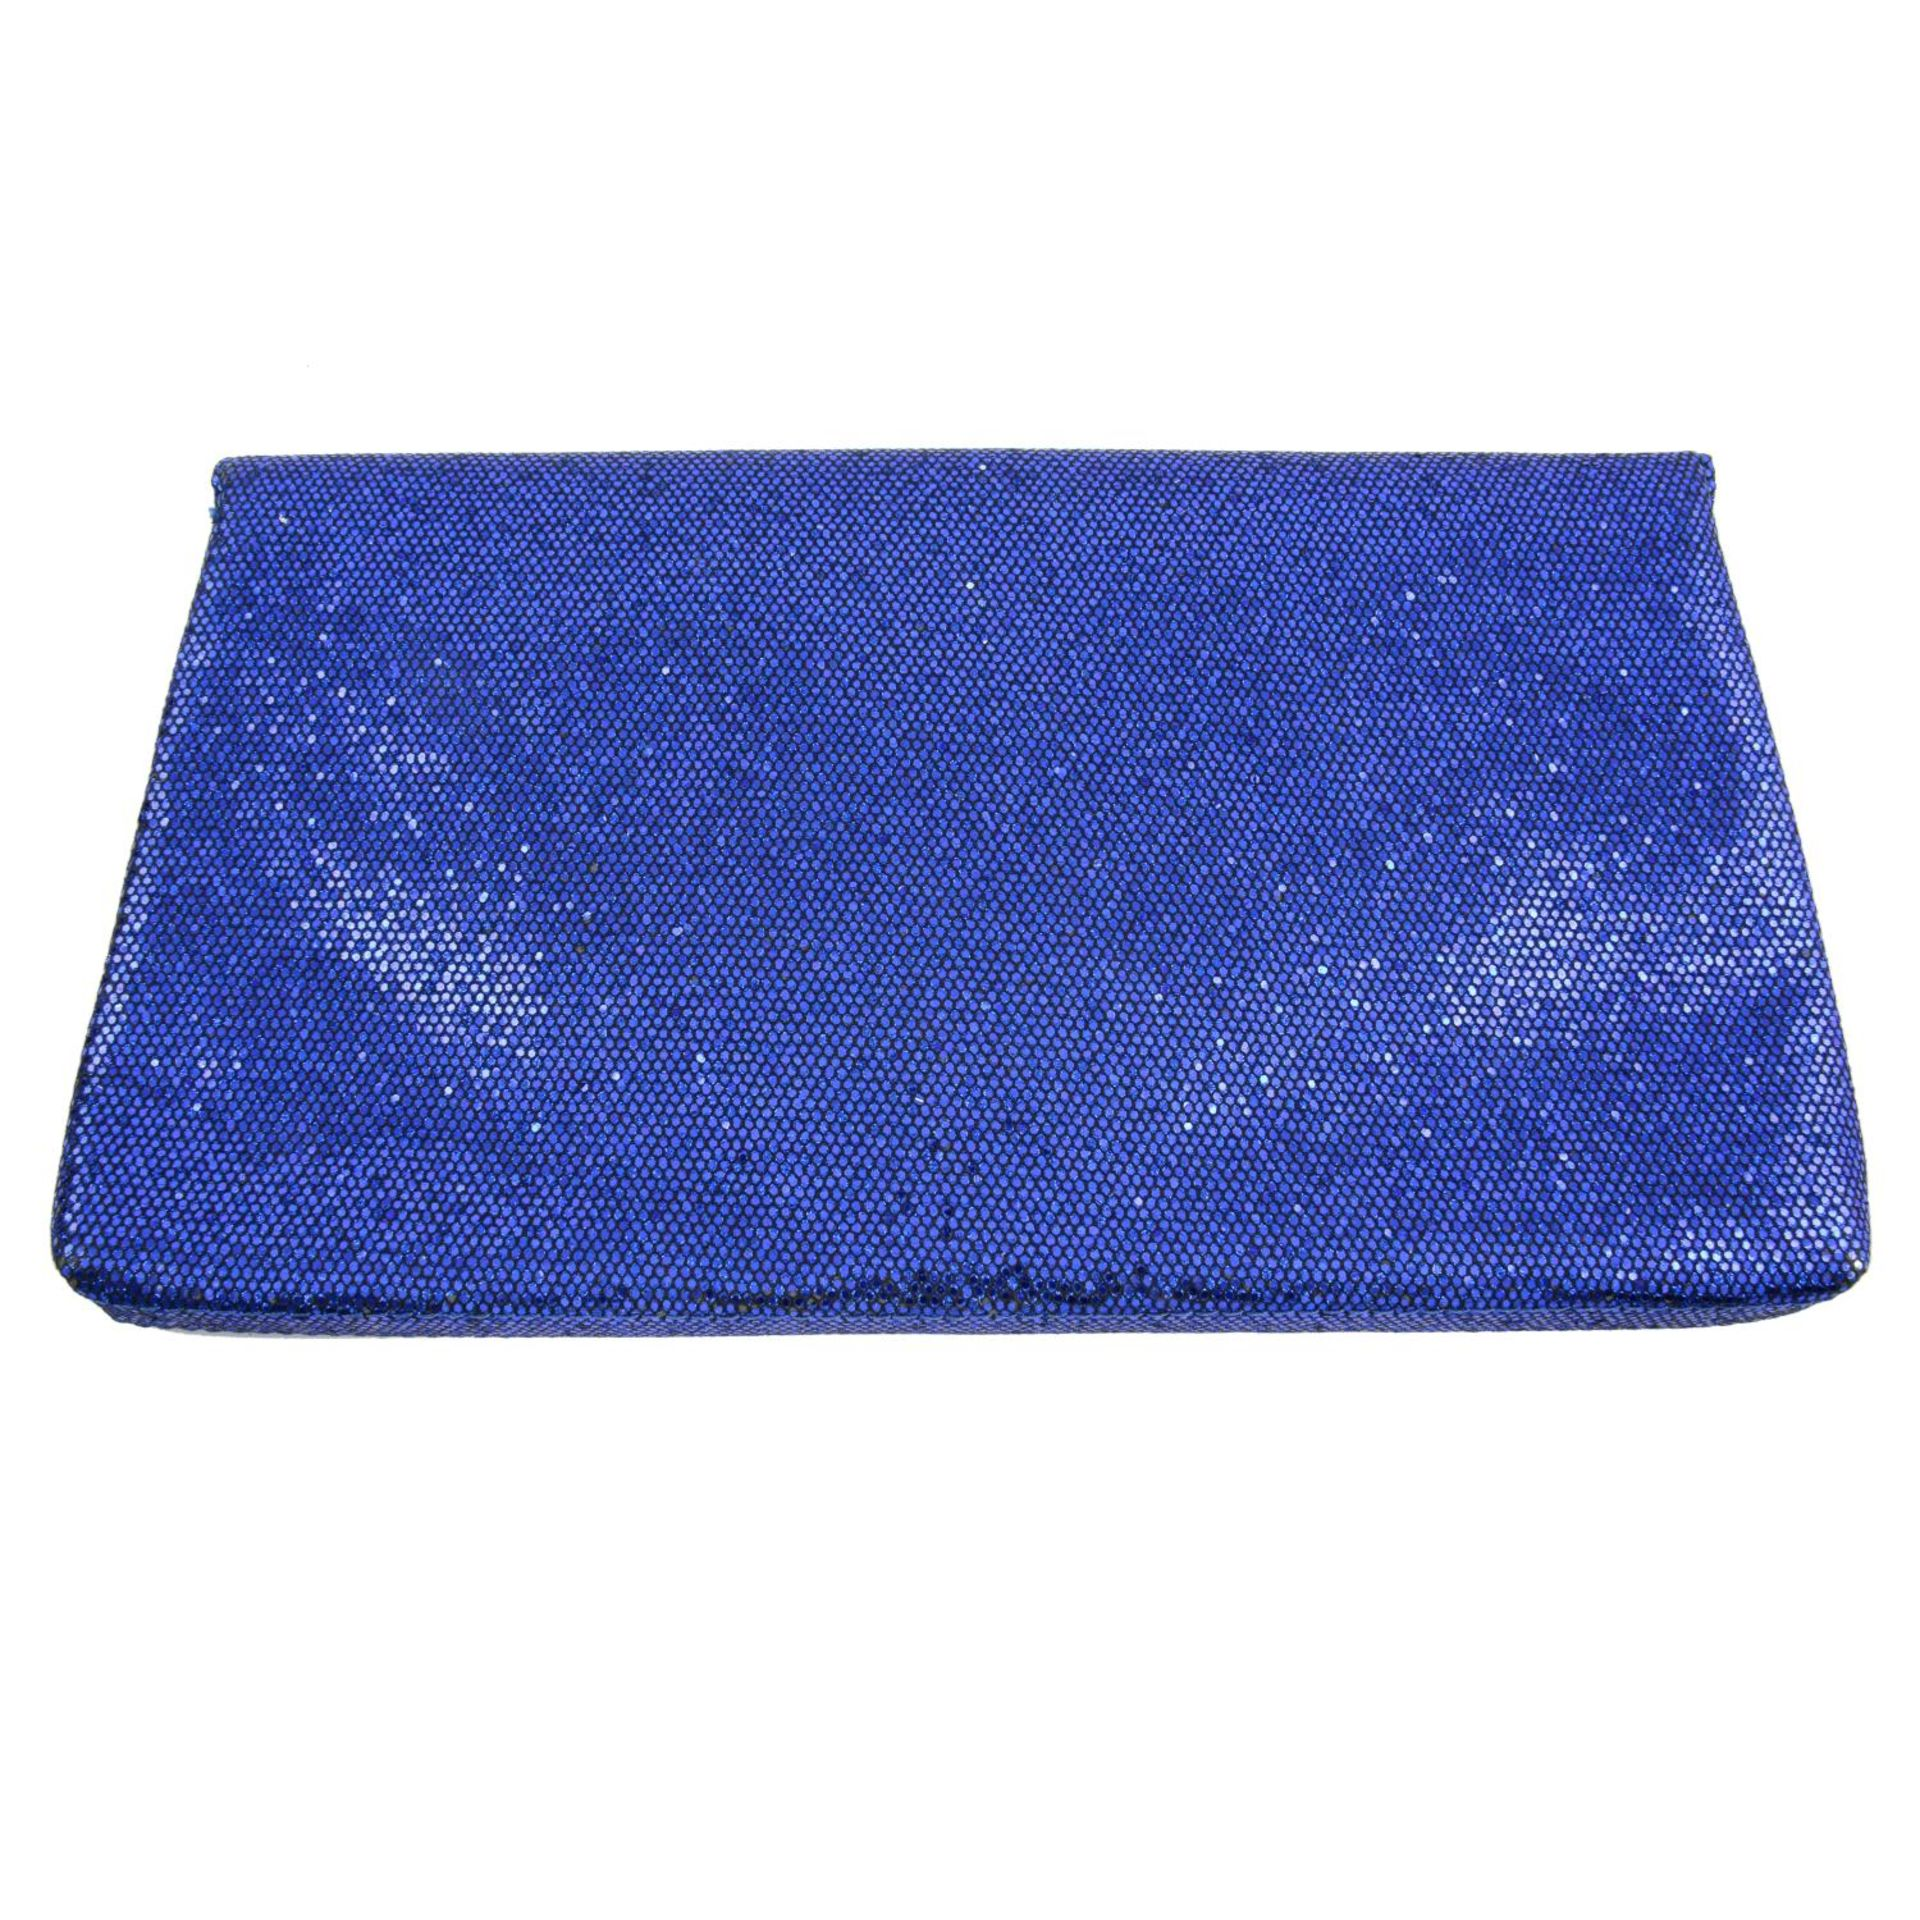 ARMANI EXCHANGE - a blue glitter clutch. - Image 2 of 4